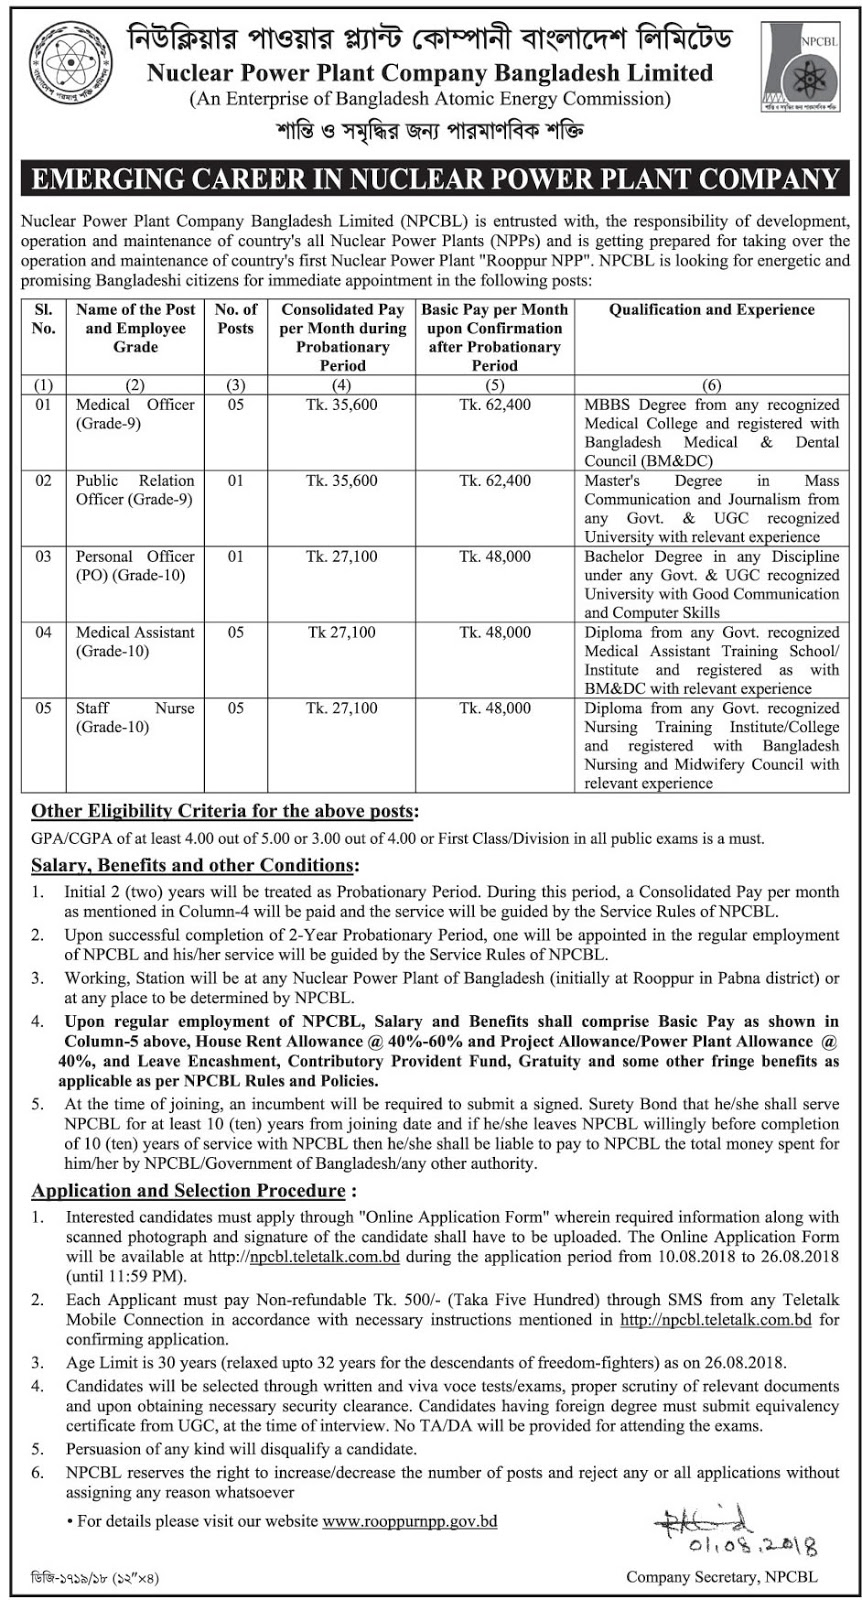 Nuclear Power Plant Company Bangladesh (NPCBL) Job Apply Instruction, Educational Qualification, Salary, Application Fee, Age and Other Information